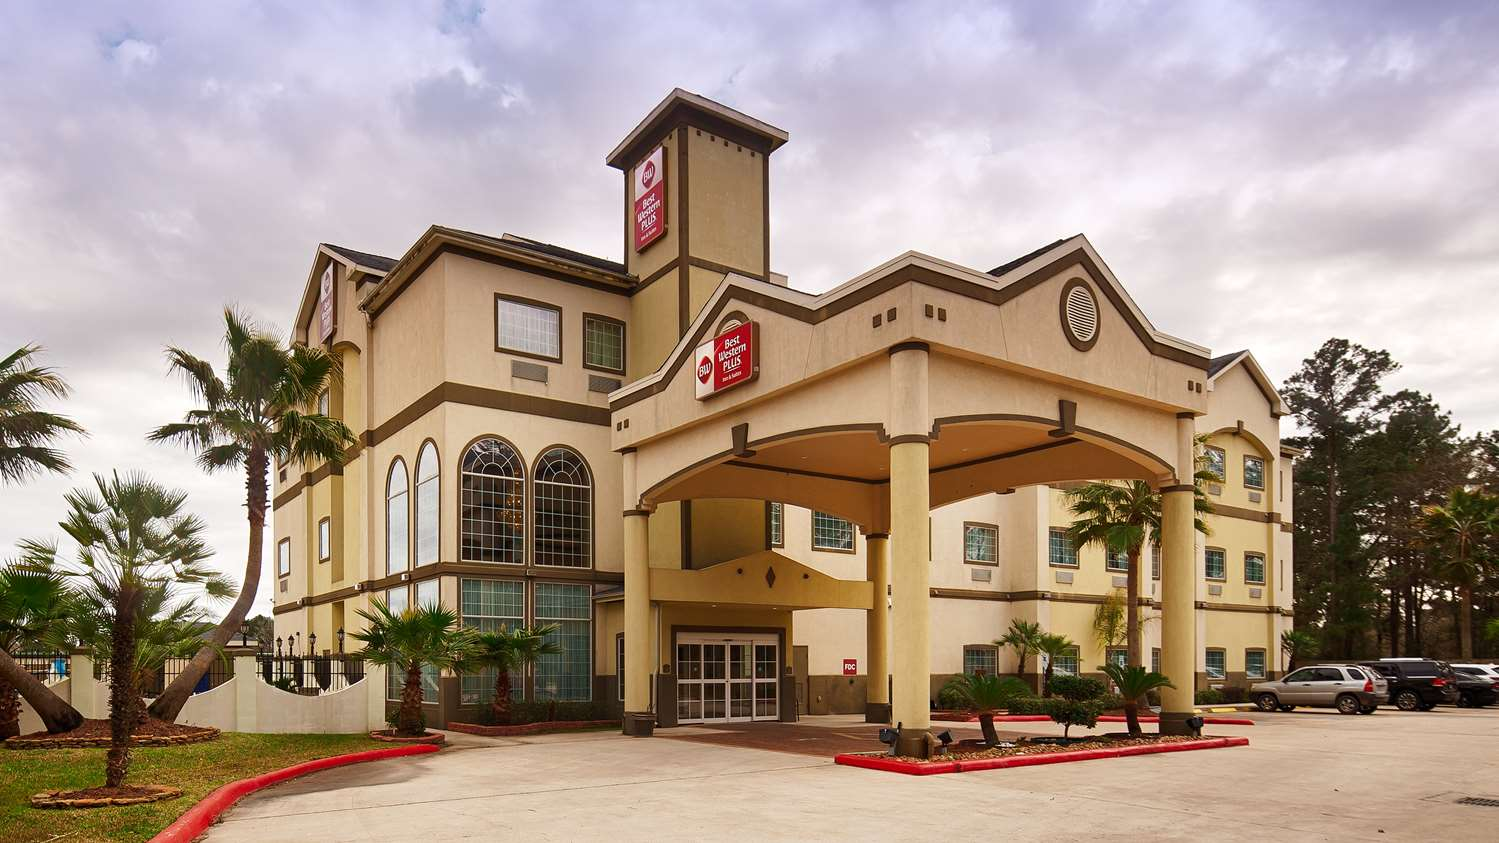 New Caney Hotels | Best Western Plus New Caney Inn & Suites